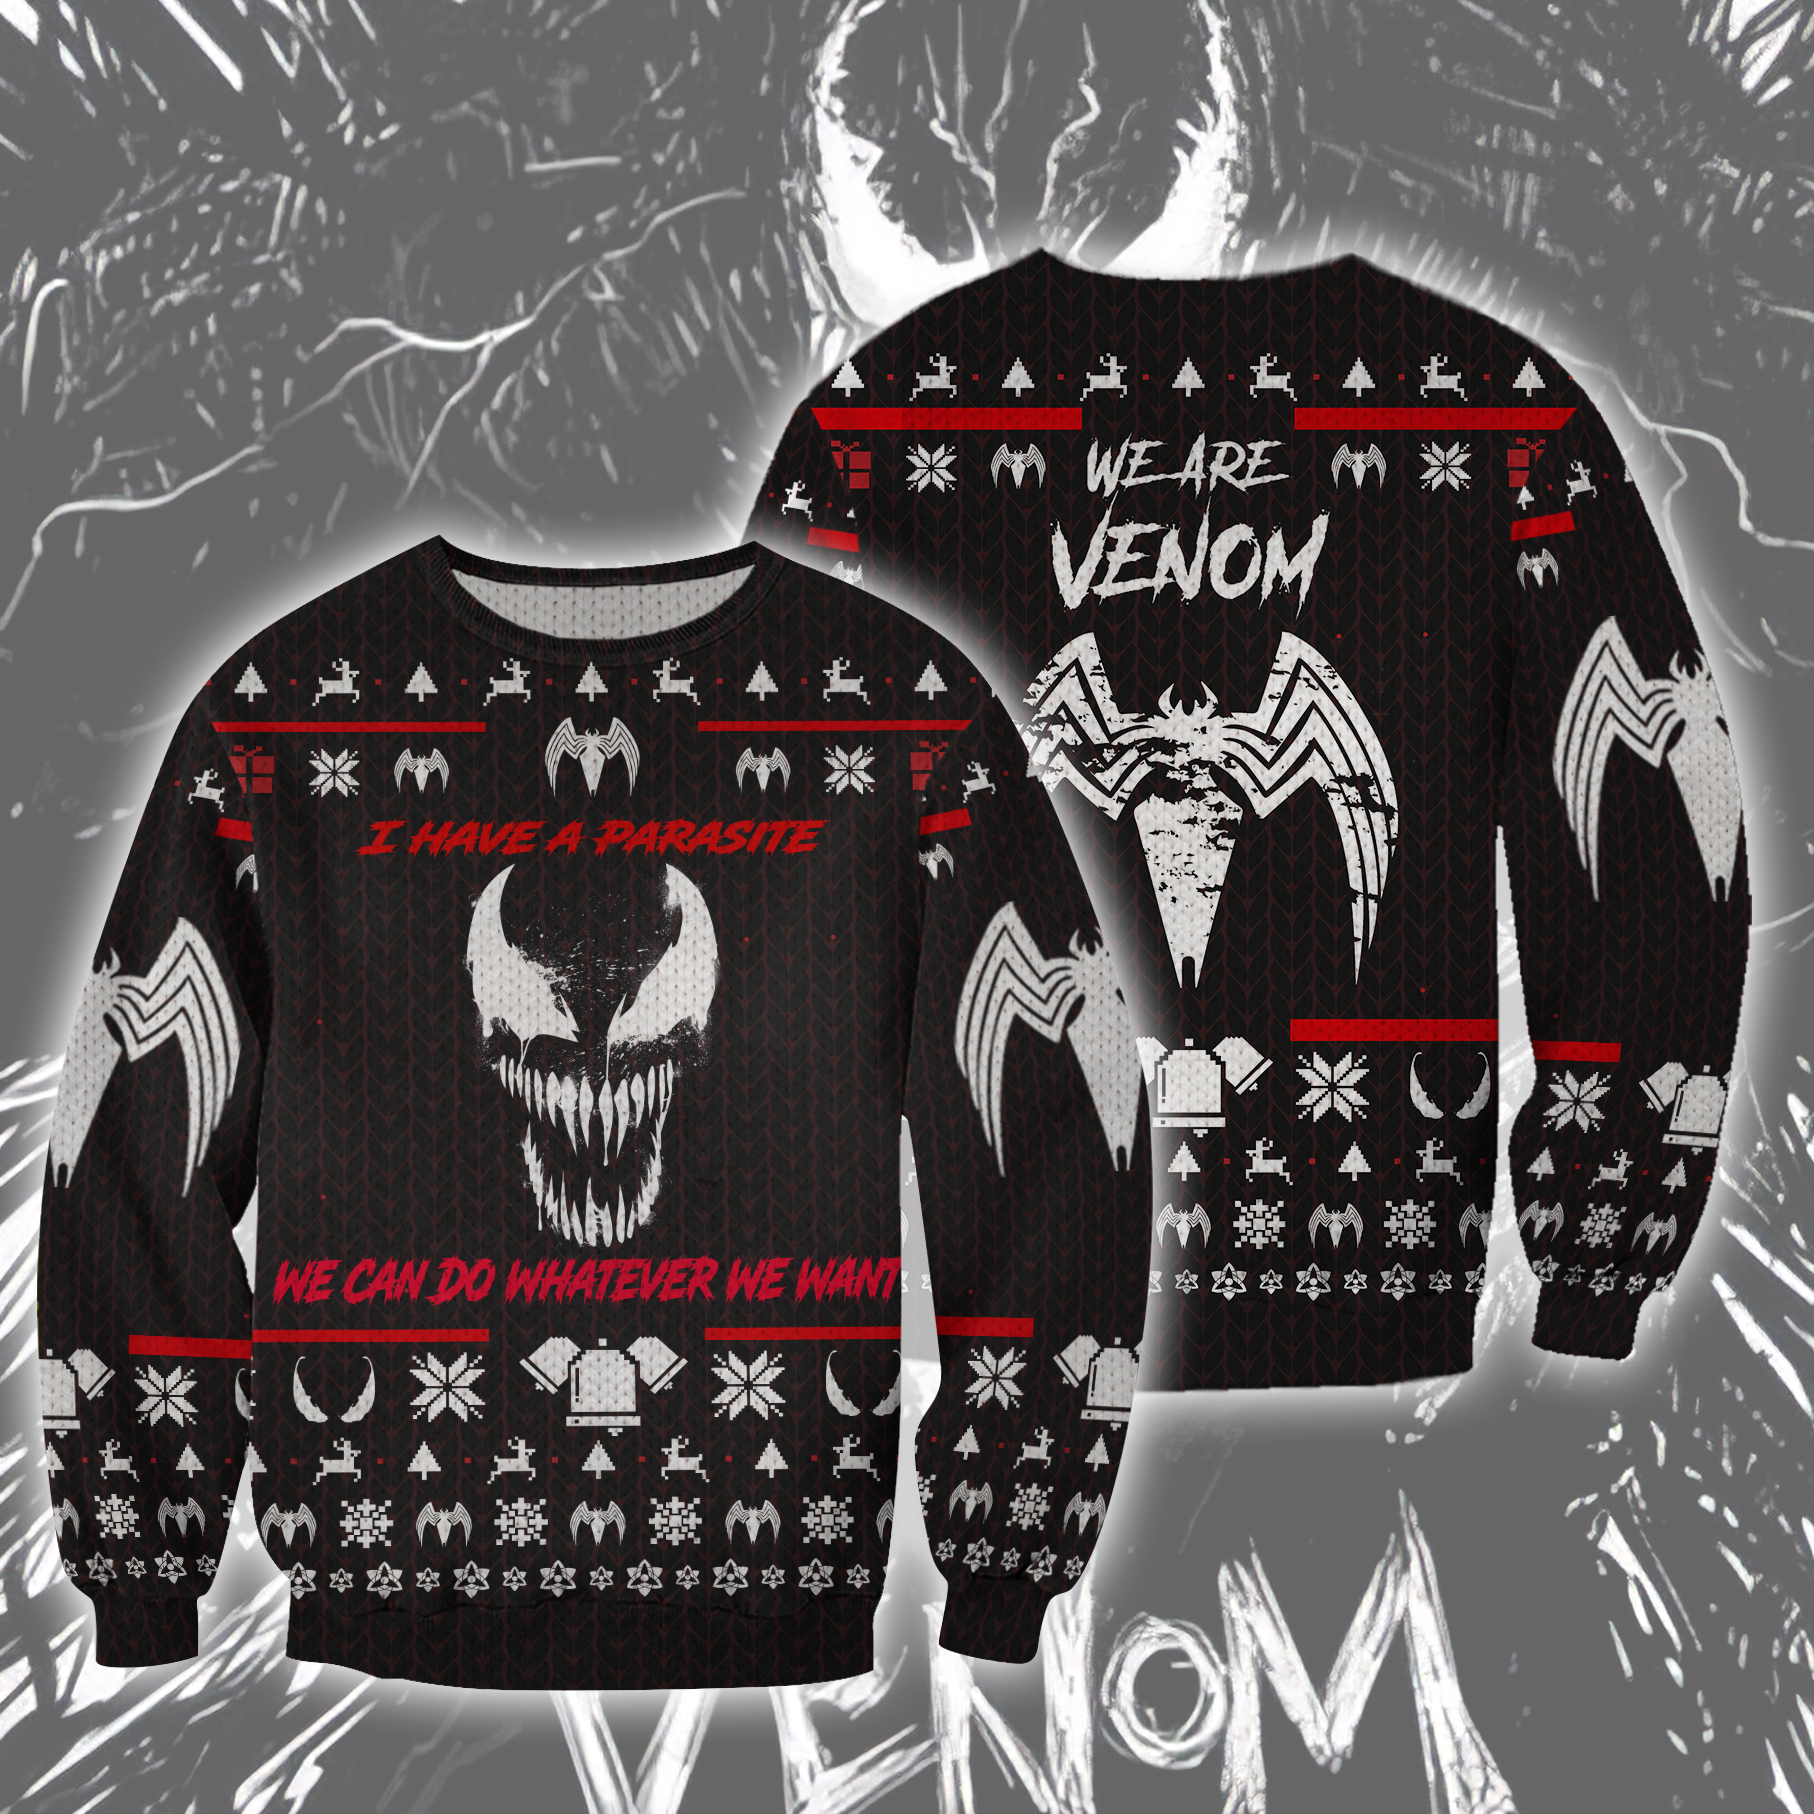 Venom I have Parasite We can do whatever you want Ugly Sweater Christmas